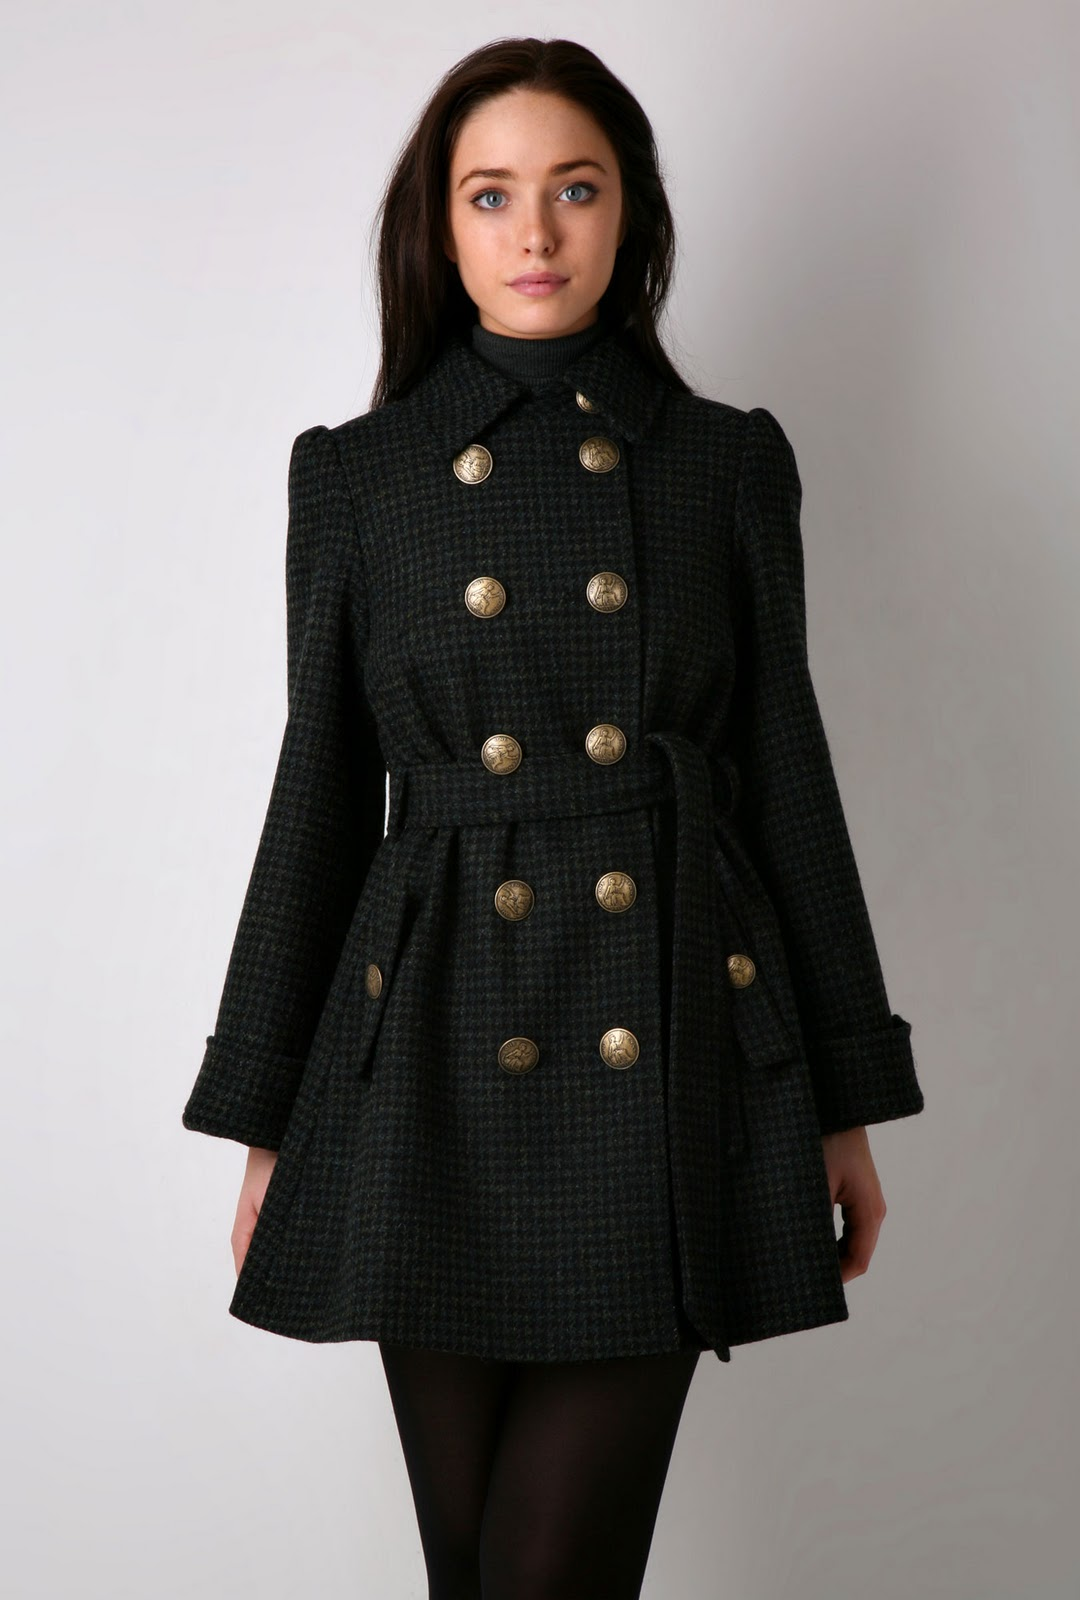 2. Best Dressy Trench Coat: Jessica Simpson Women's Double-Breasted Bouclé Coat